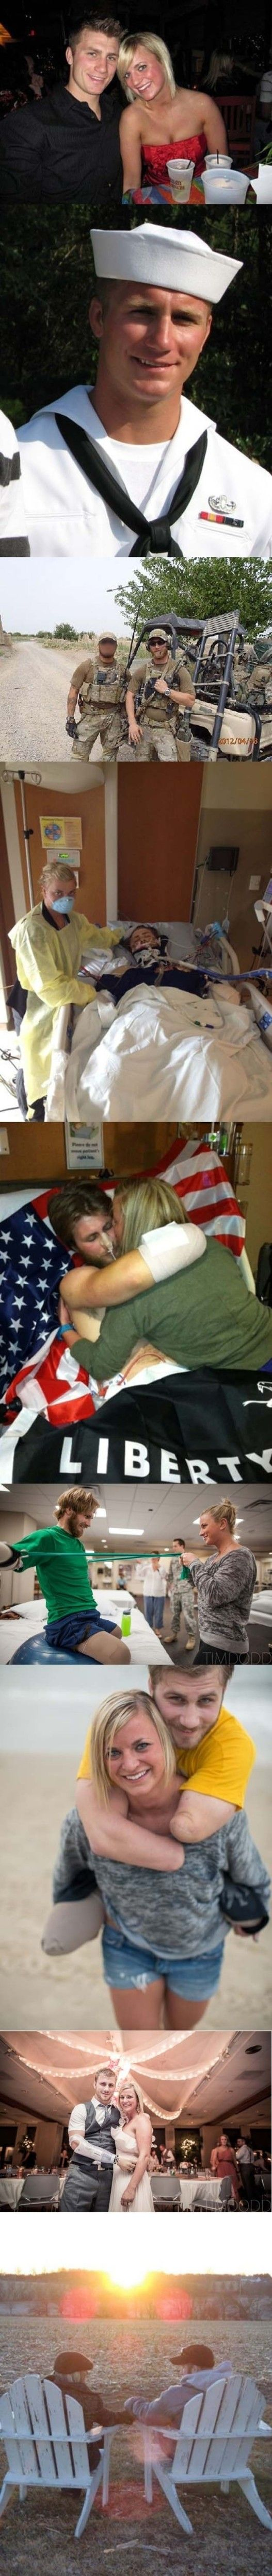 Most Touching Photos